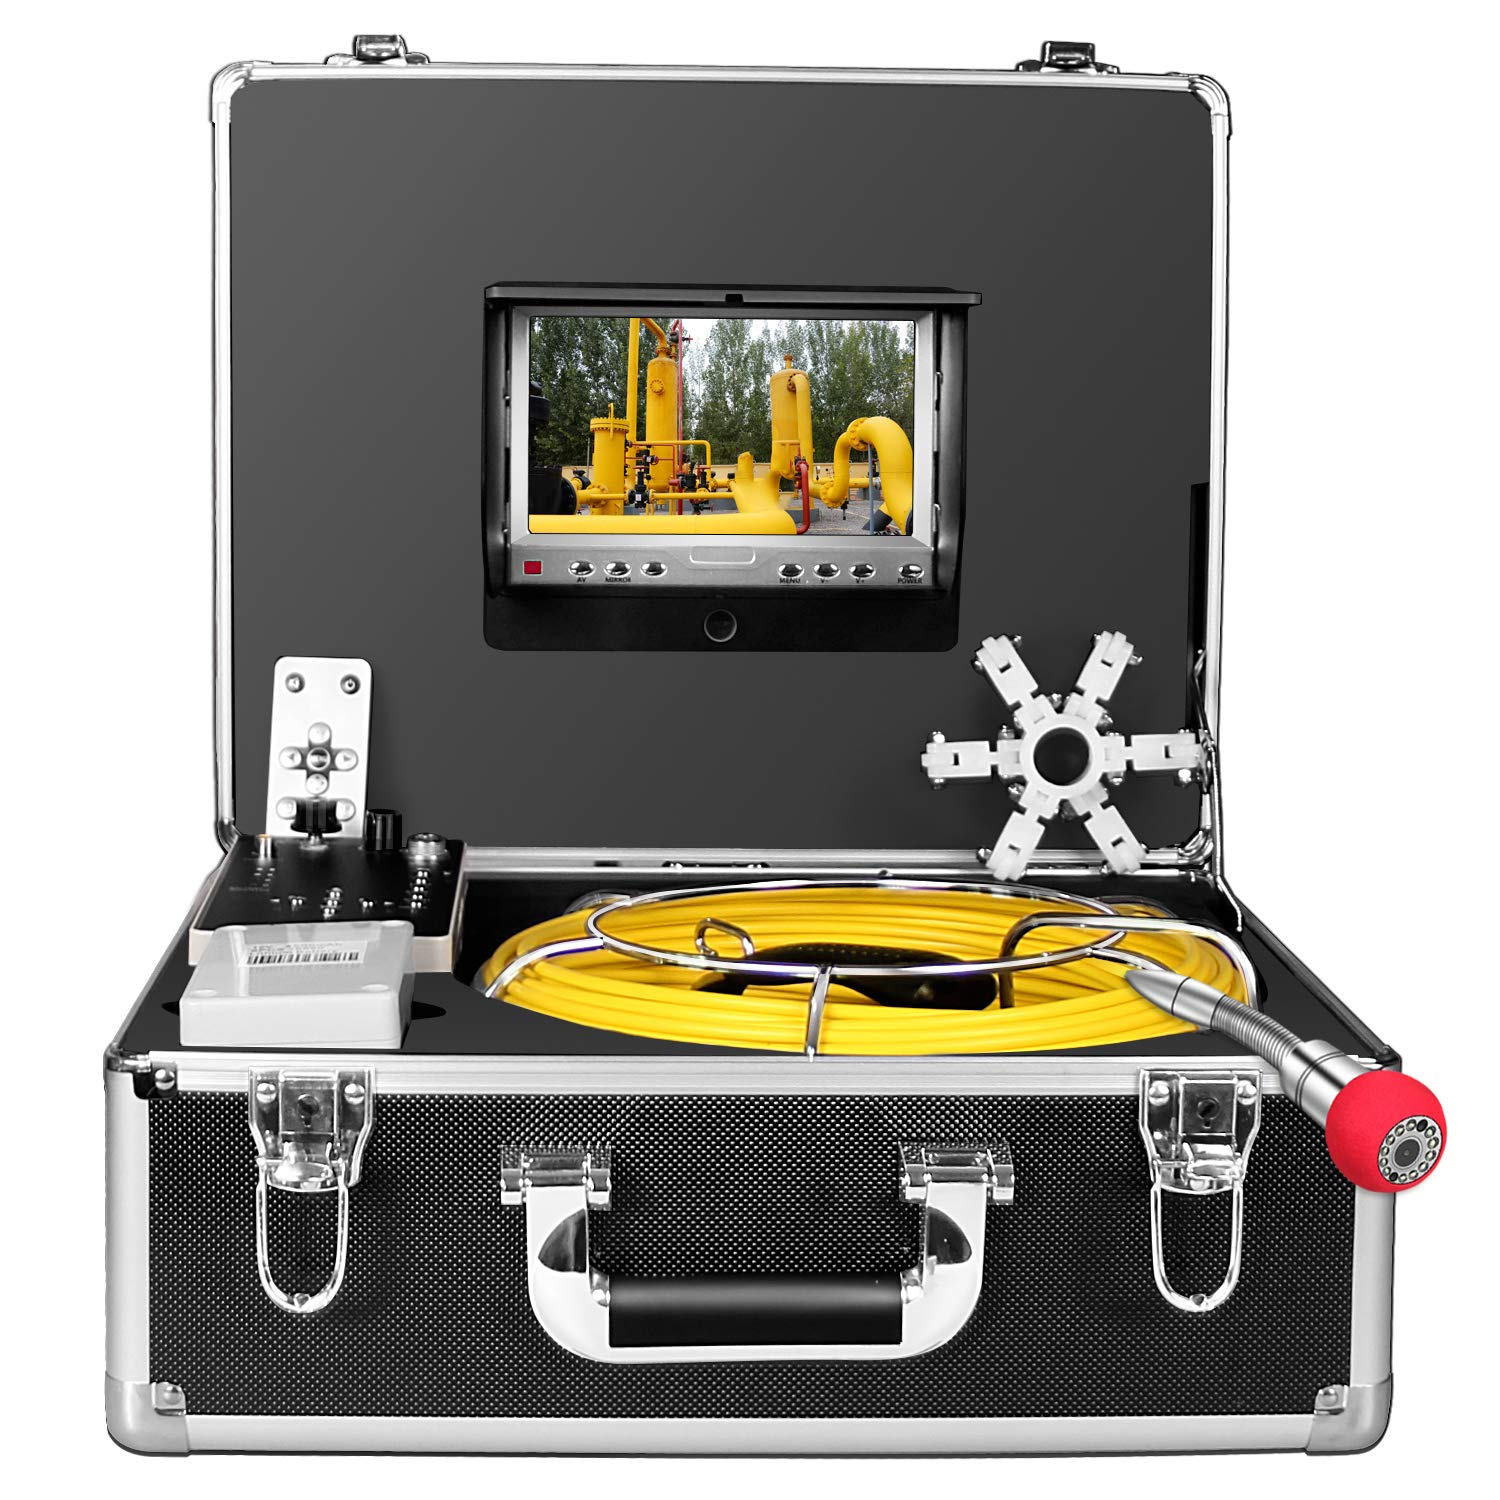 Pipe Camera,IHBUDS Sewer Camera 30M 100ft Cable Pipe Inspection Camera with DVR Recorder Video System 7 Inch TFT LCD Monitor 1000TVL Sony CCD Plumbing Camera Industrial Endoscope 30M-with DVR